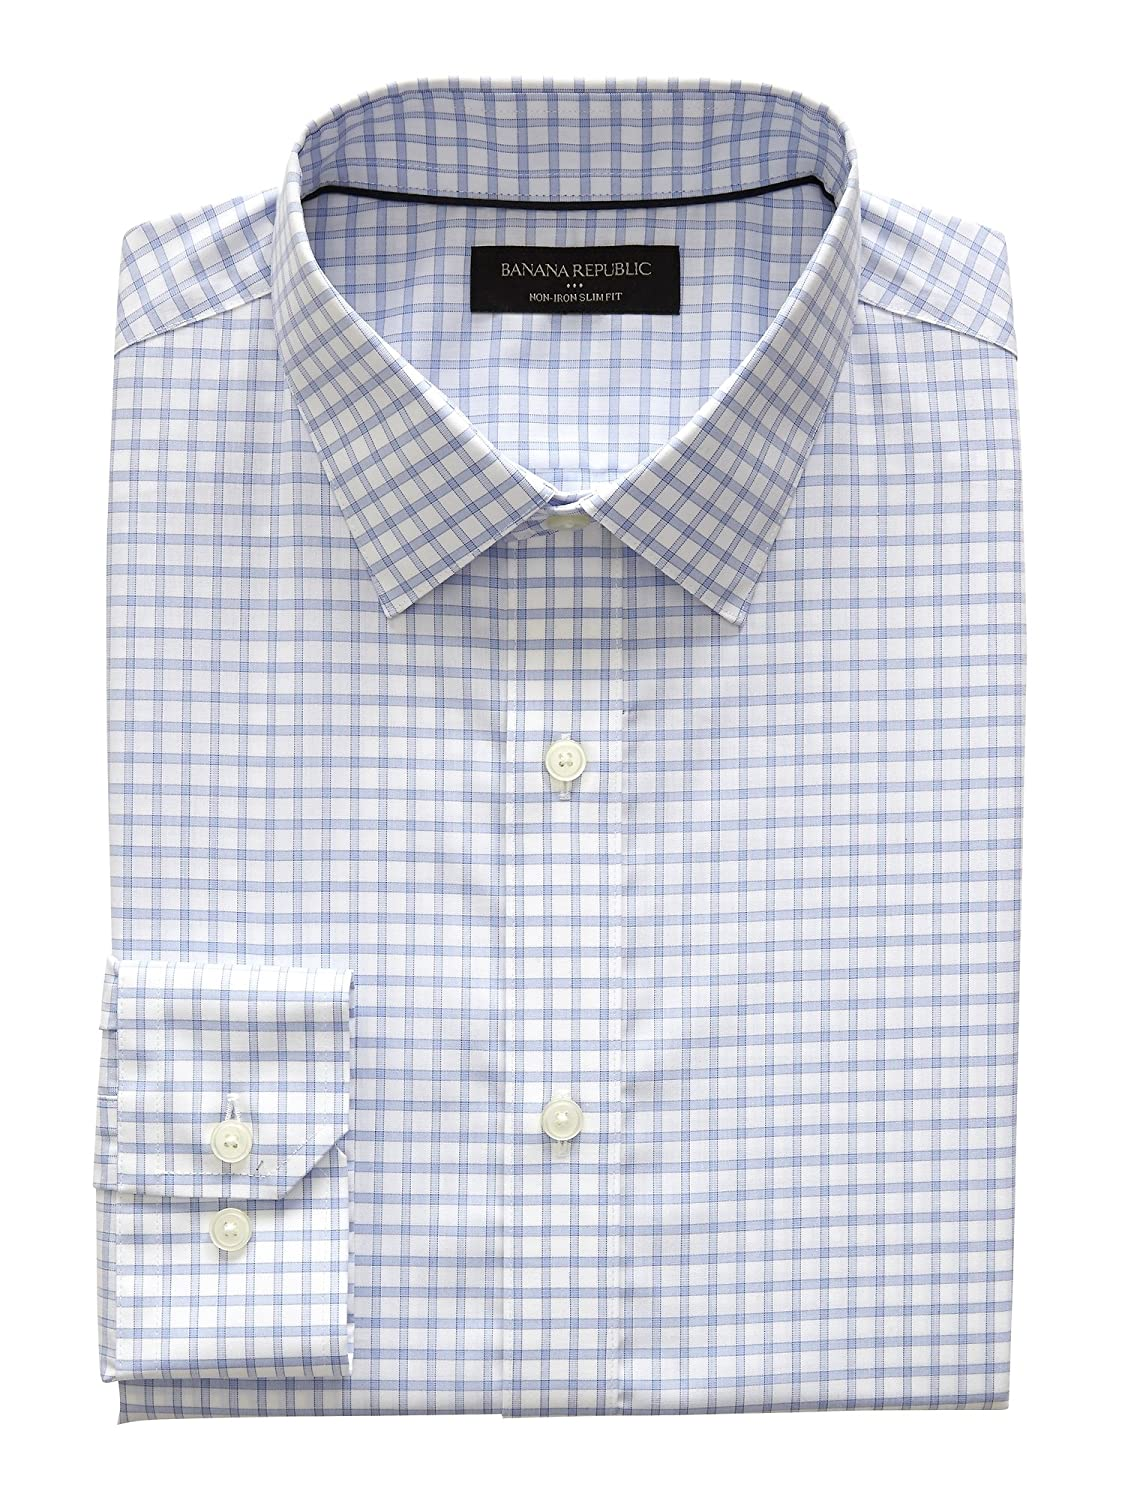 a903ab2c5c Slim Fit  Slim cut in the chest and sleeves. Tapered through the waist.  Spread collar. Clean front. Innovative non-iron technology makes this shirt  ...